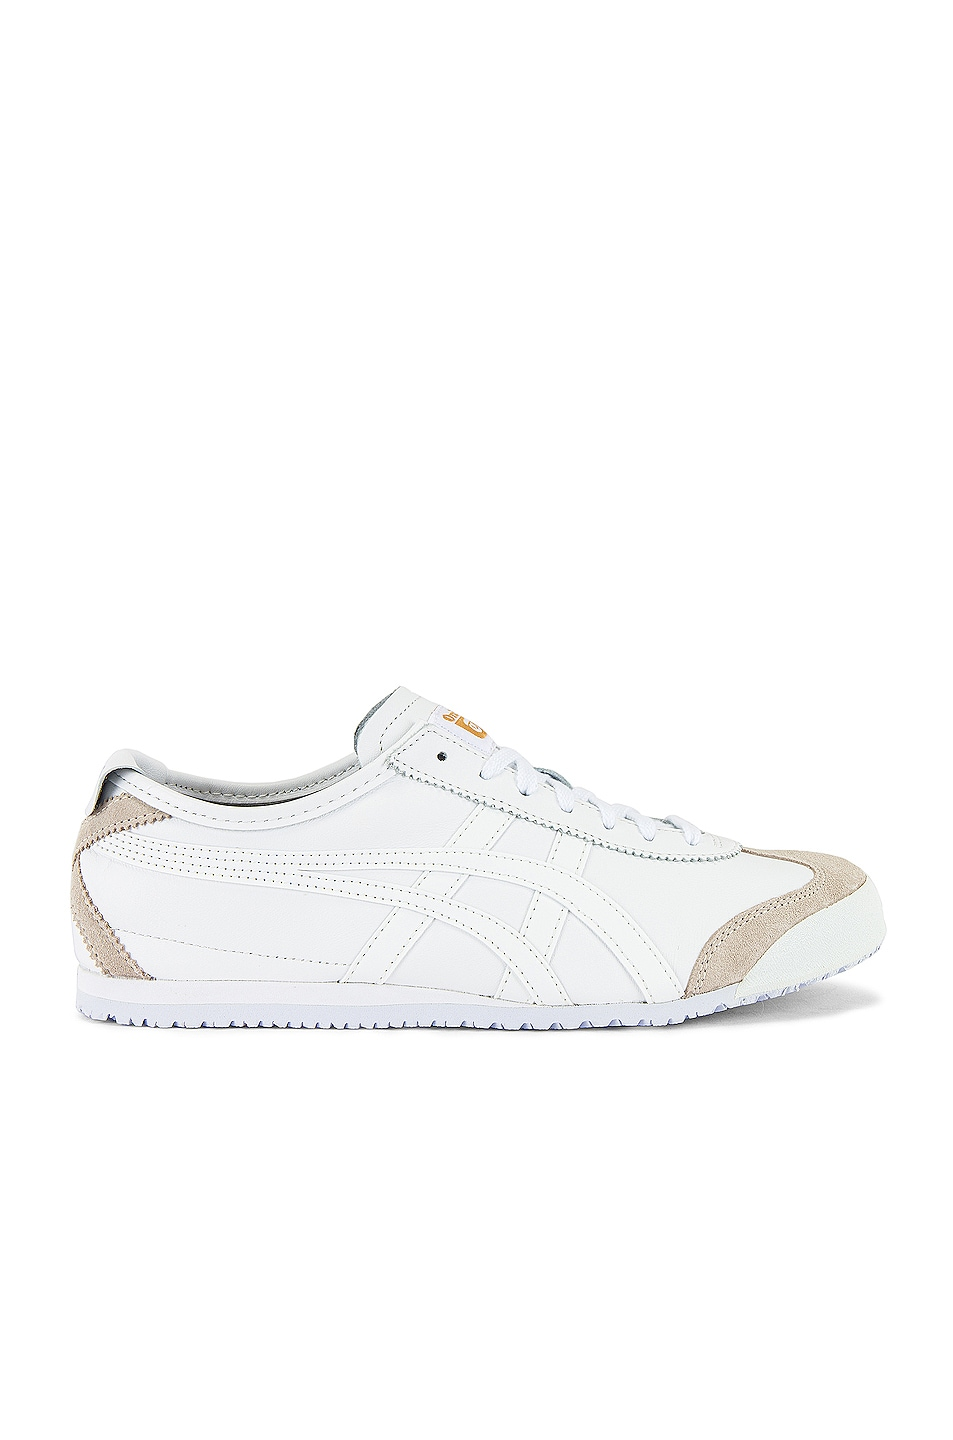 Image 1 of Onitsuka Tiger Mexico 66 in White White